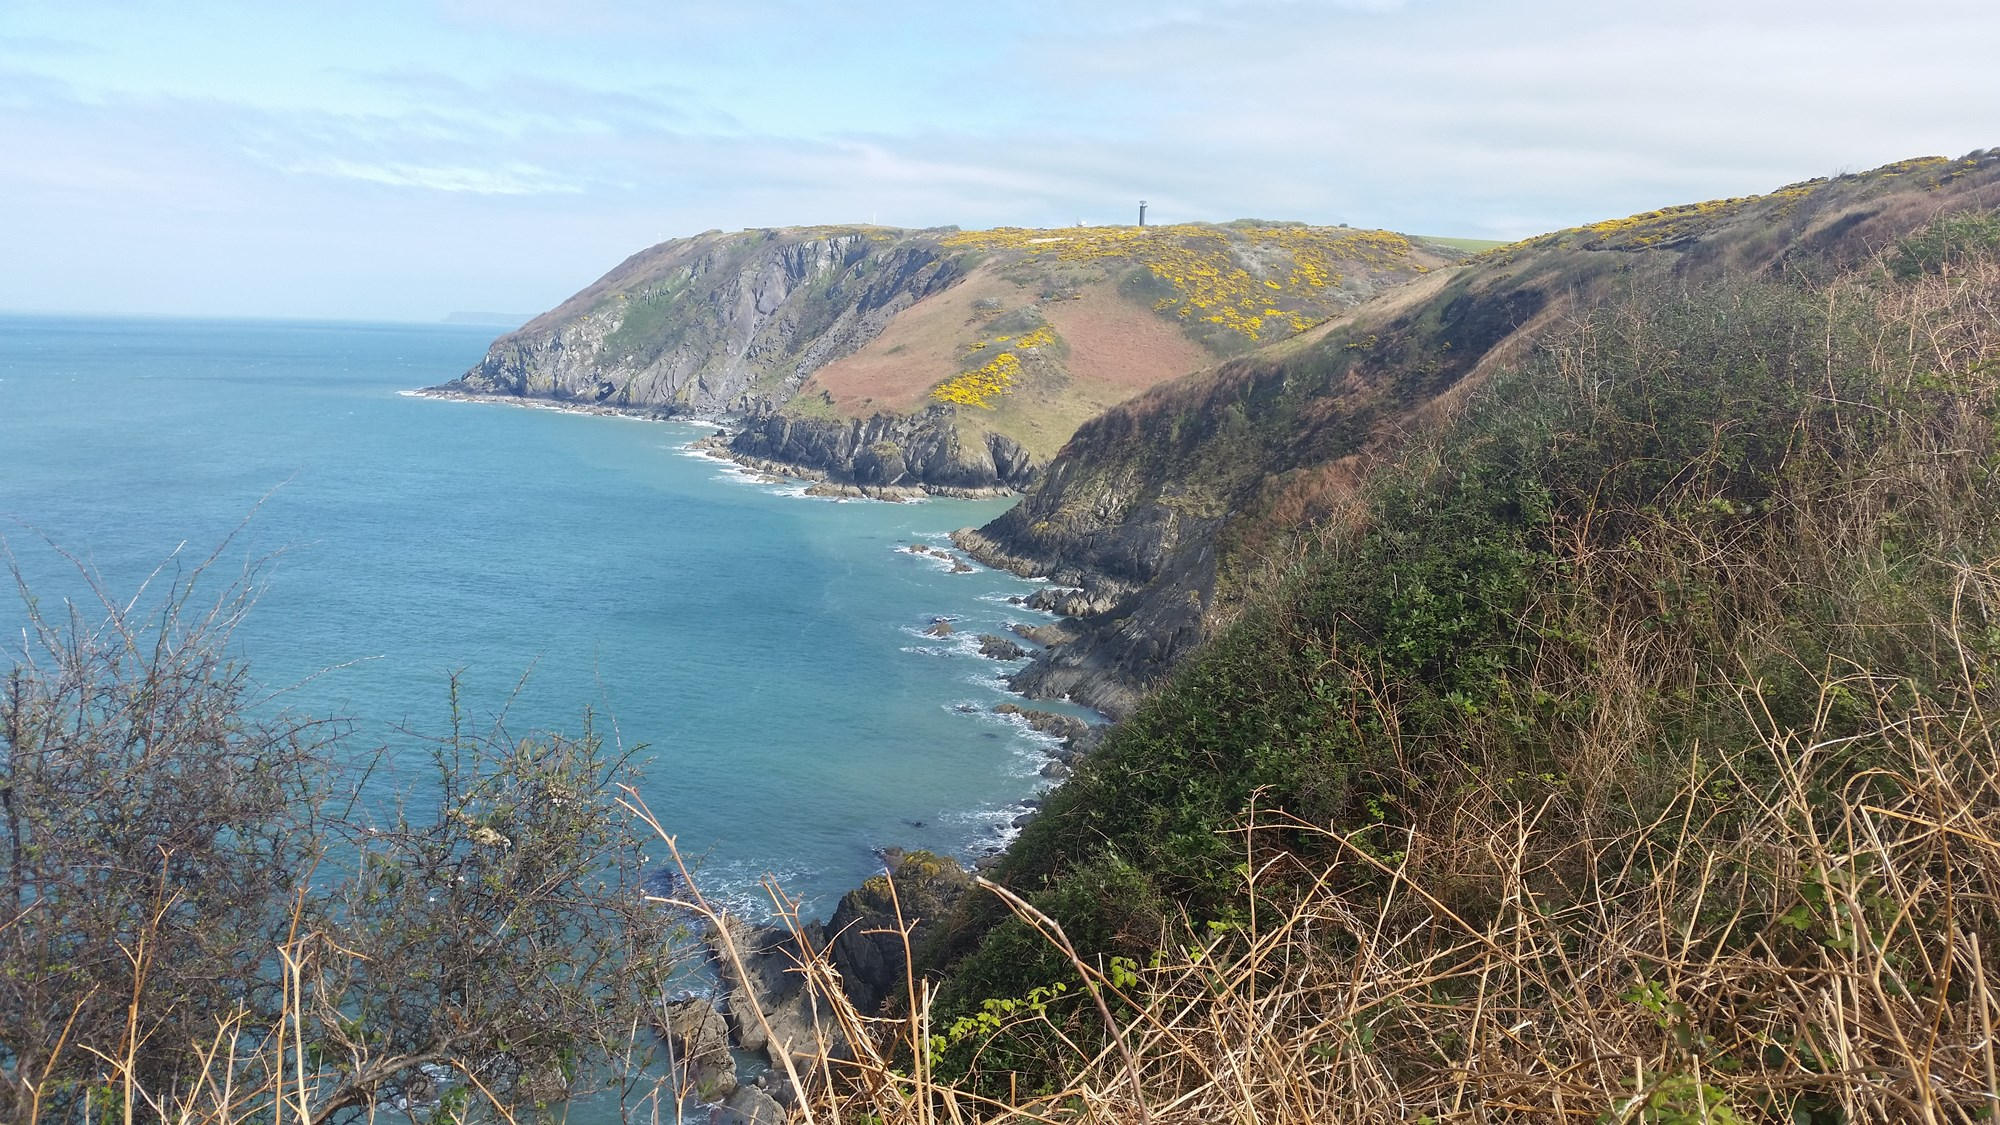 Looking back to Aberporth